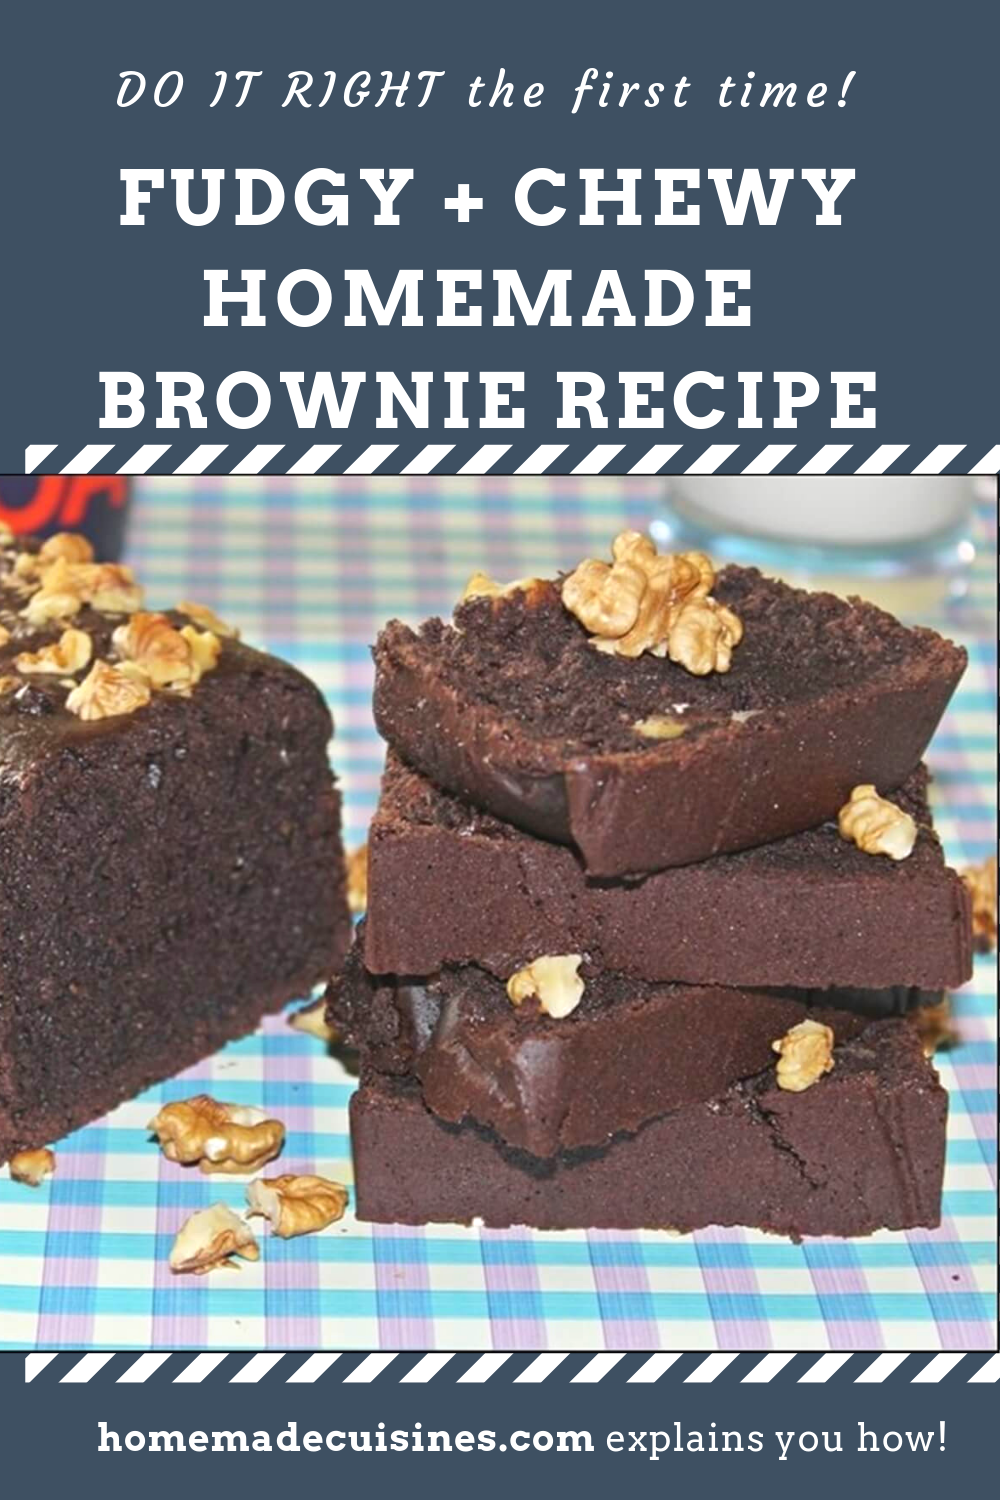 Chewy No Eggs Homemade Brownie Recipe Eggless Brownie Recipe Cocoa Powder Recipes Brownie Recipes